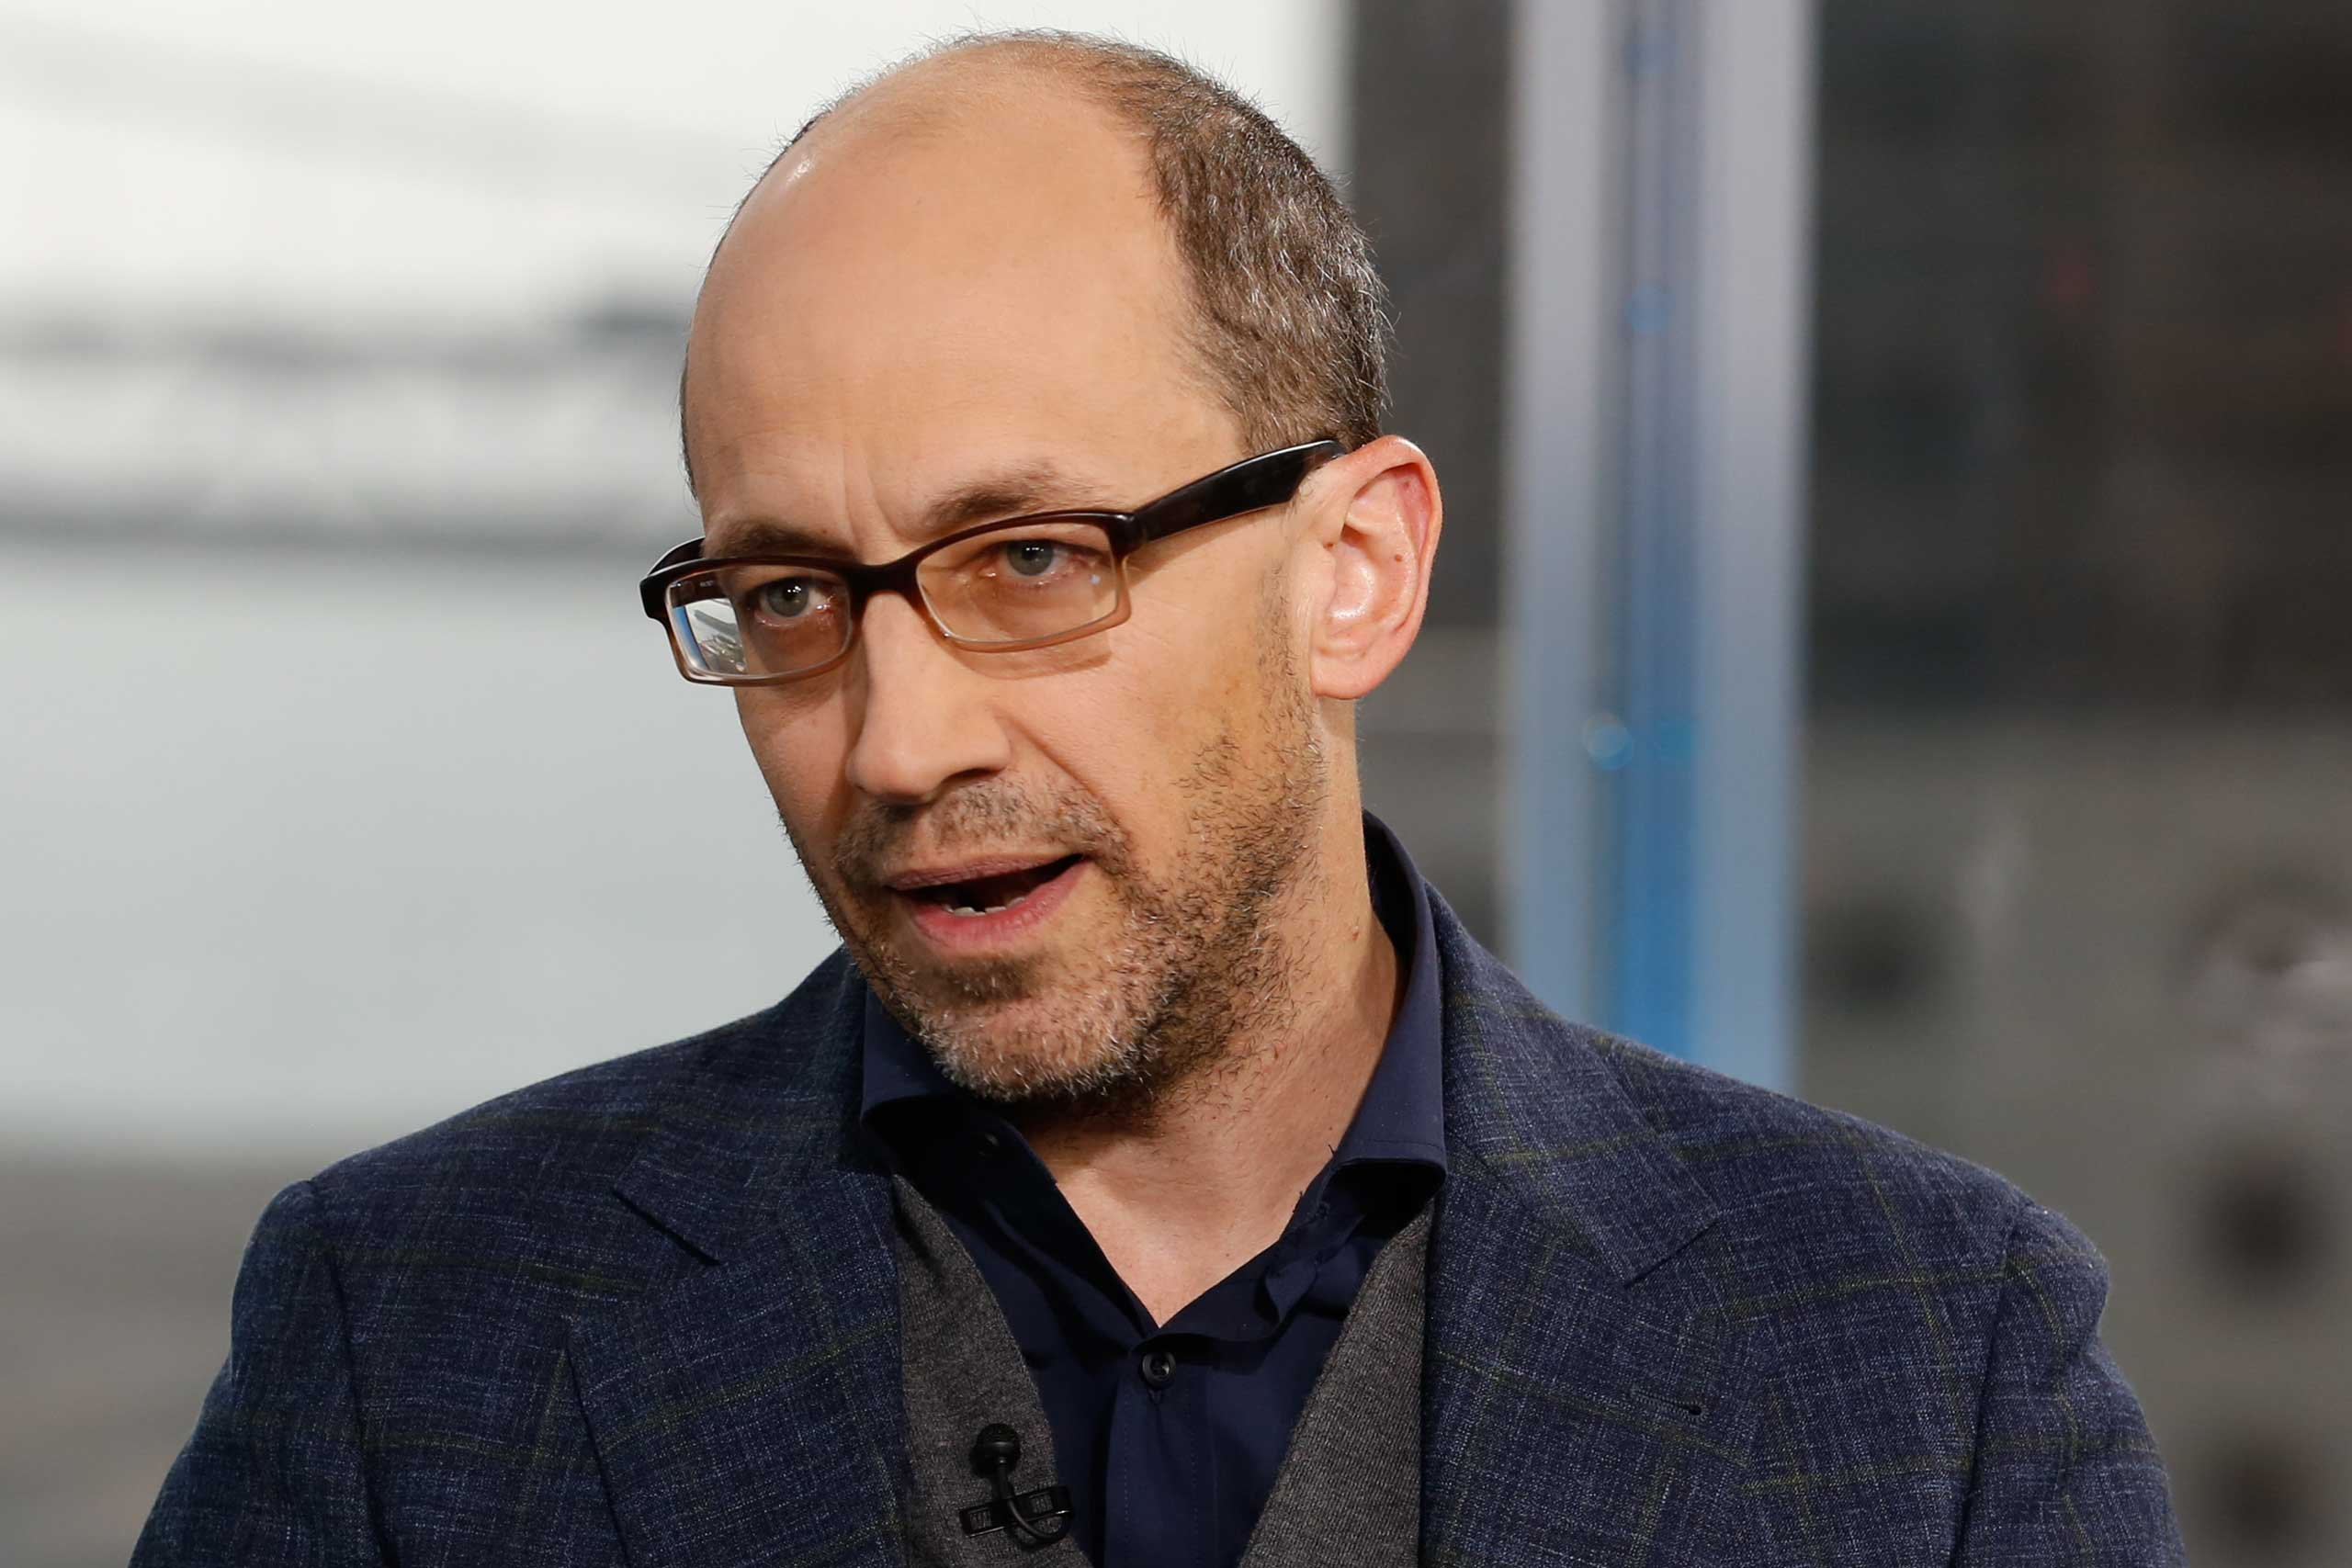 Dick Costolo, CEO of Twitter, in an interview at CNBC's San Francisco bureau, on April 29, 2015